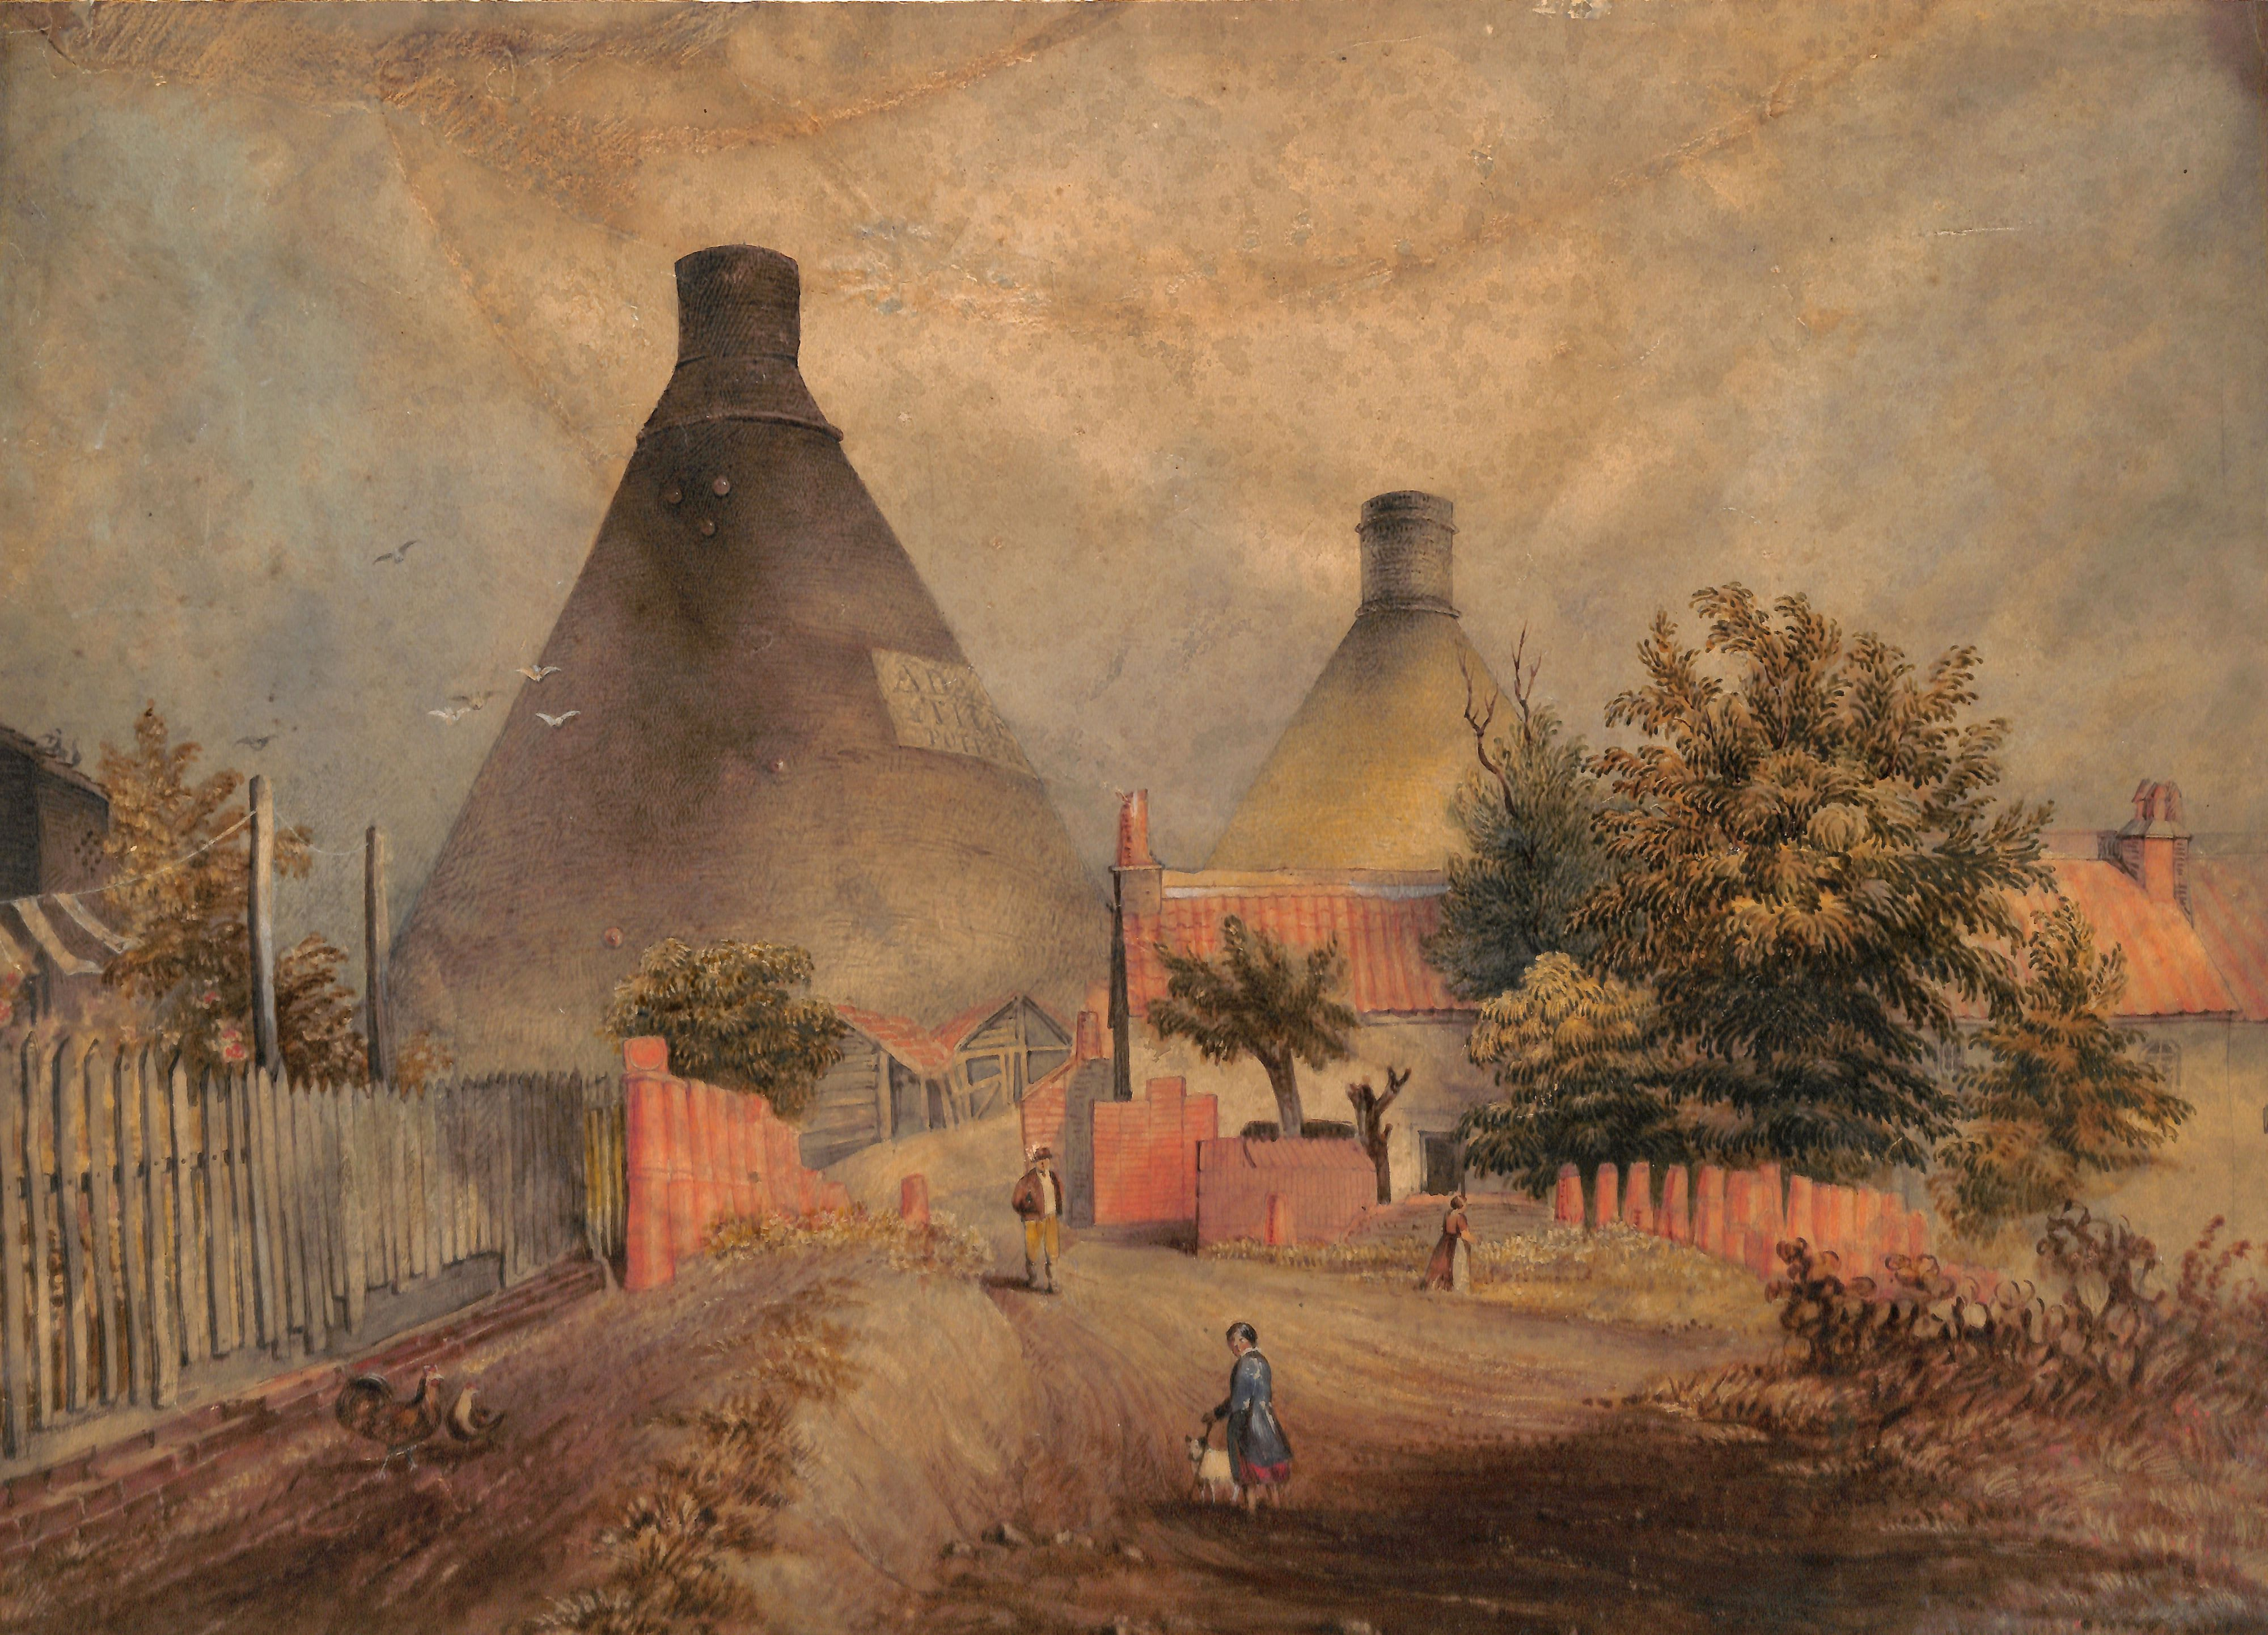 Watercolour painting. Figures walk down a dirt road towards two bottle-shaped tile chimneys and various outbuildings.